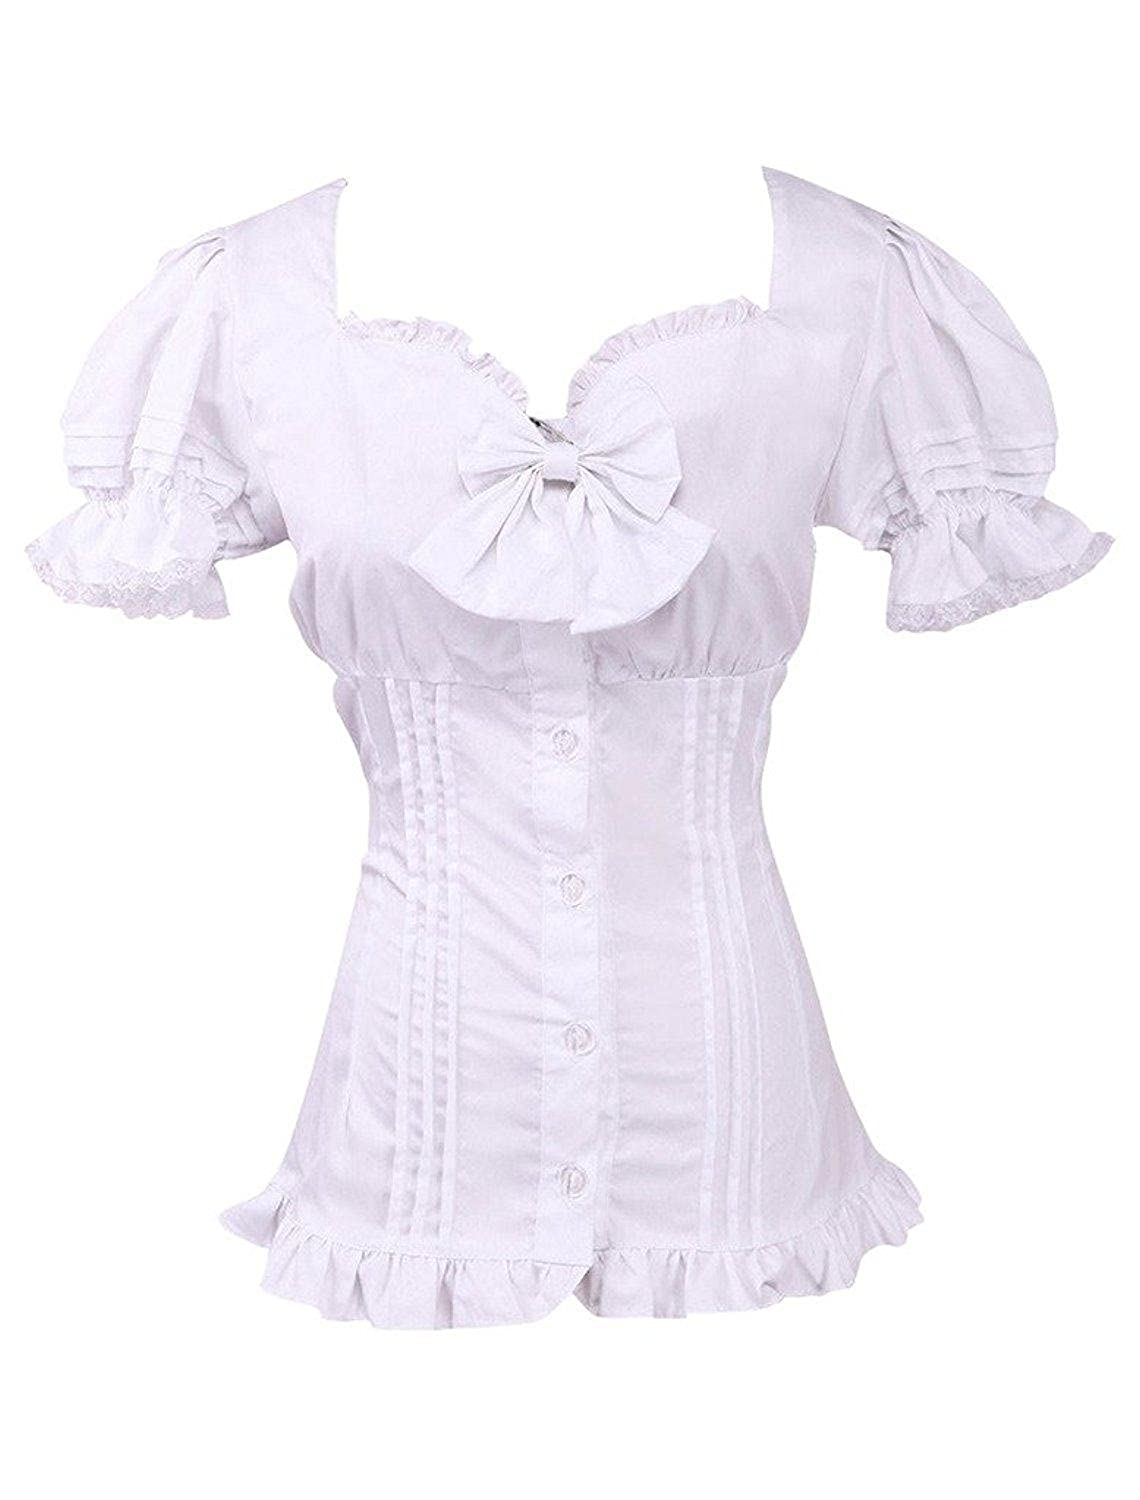 Cemavin Cotton Black and White Ruffle Lolita Blouse